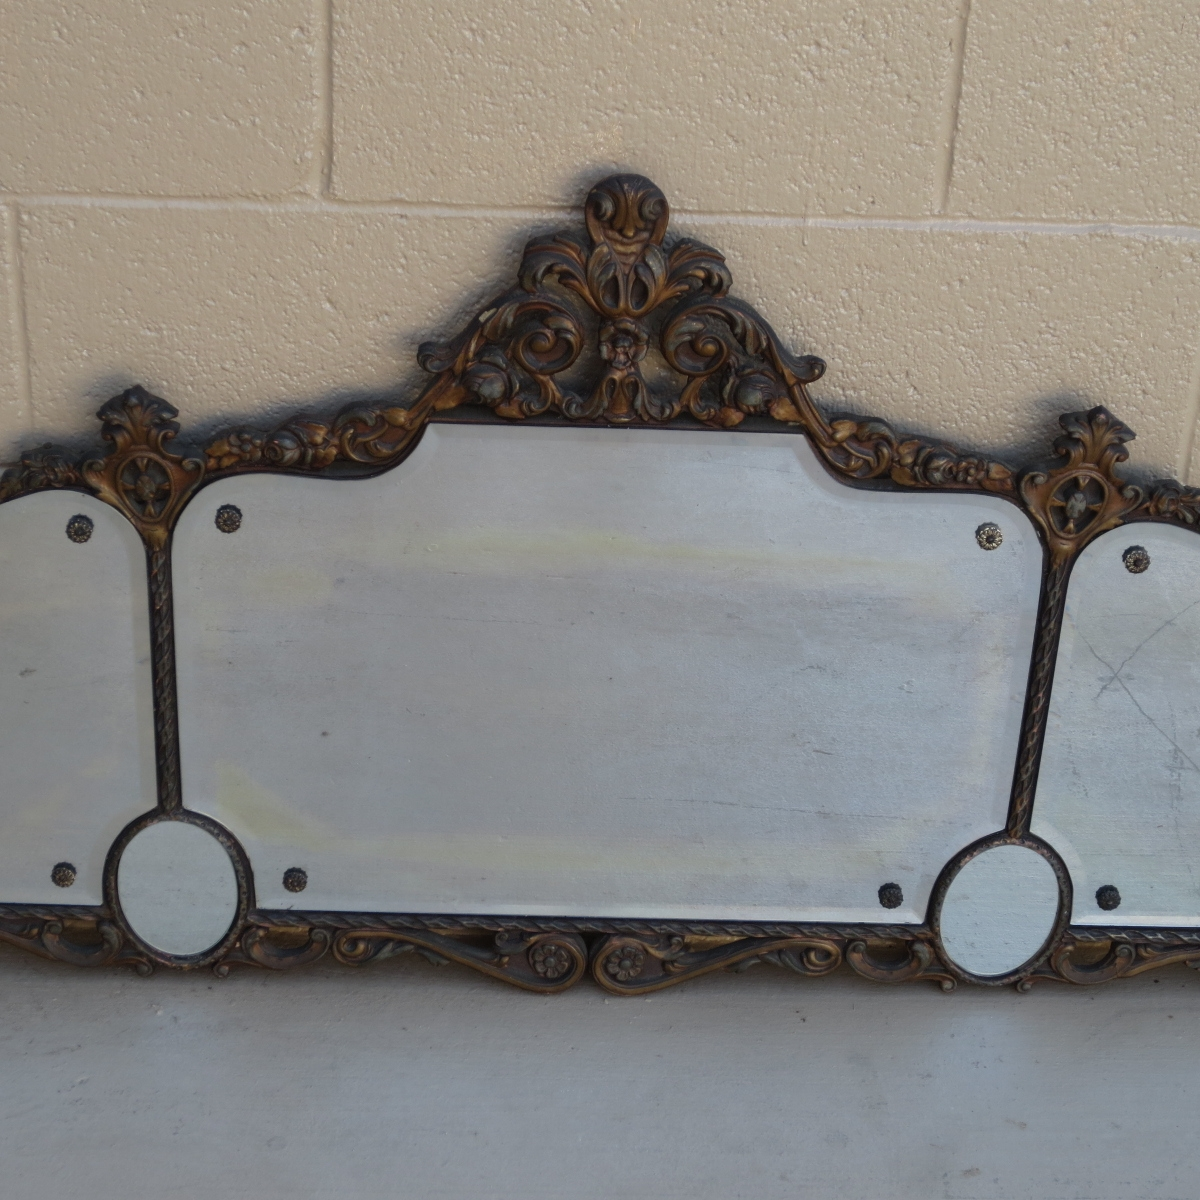 American Antique Mirror Antique Wall Mirror Pertaining To Antique Wall Mirrors (Image 1 of 15)